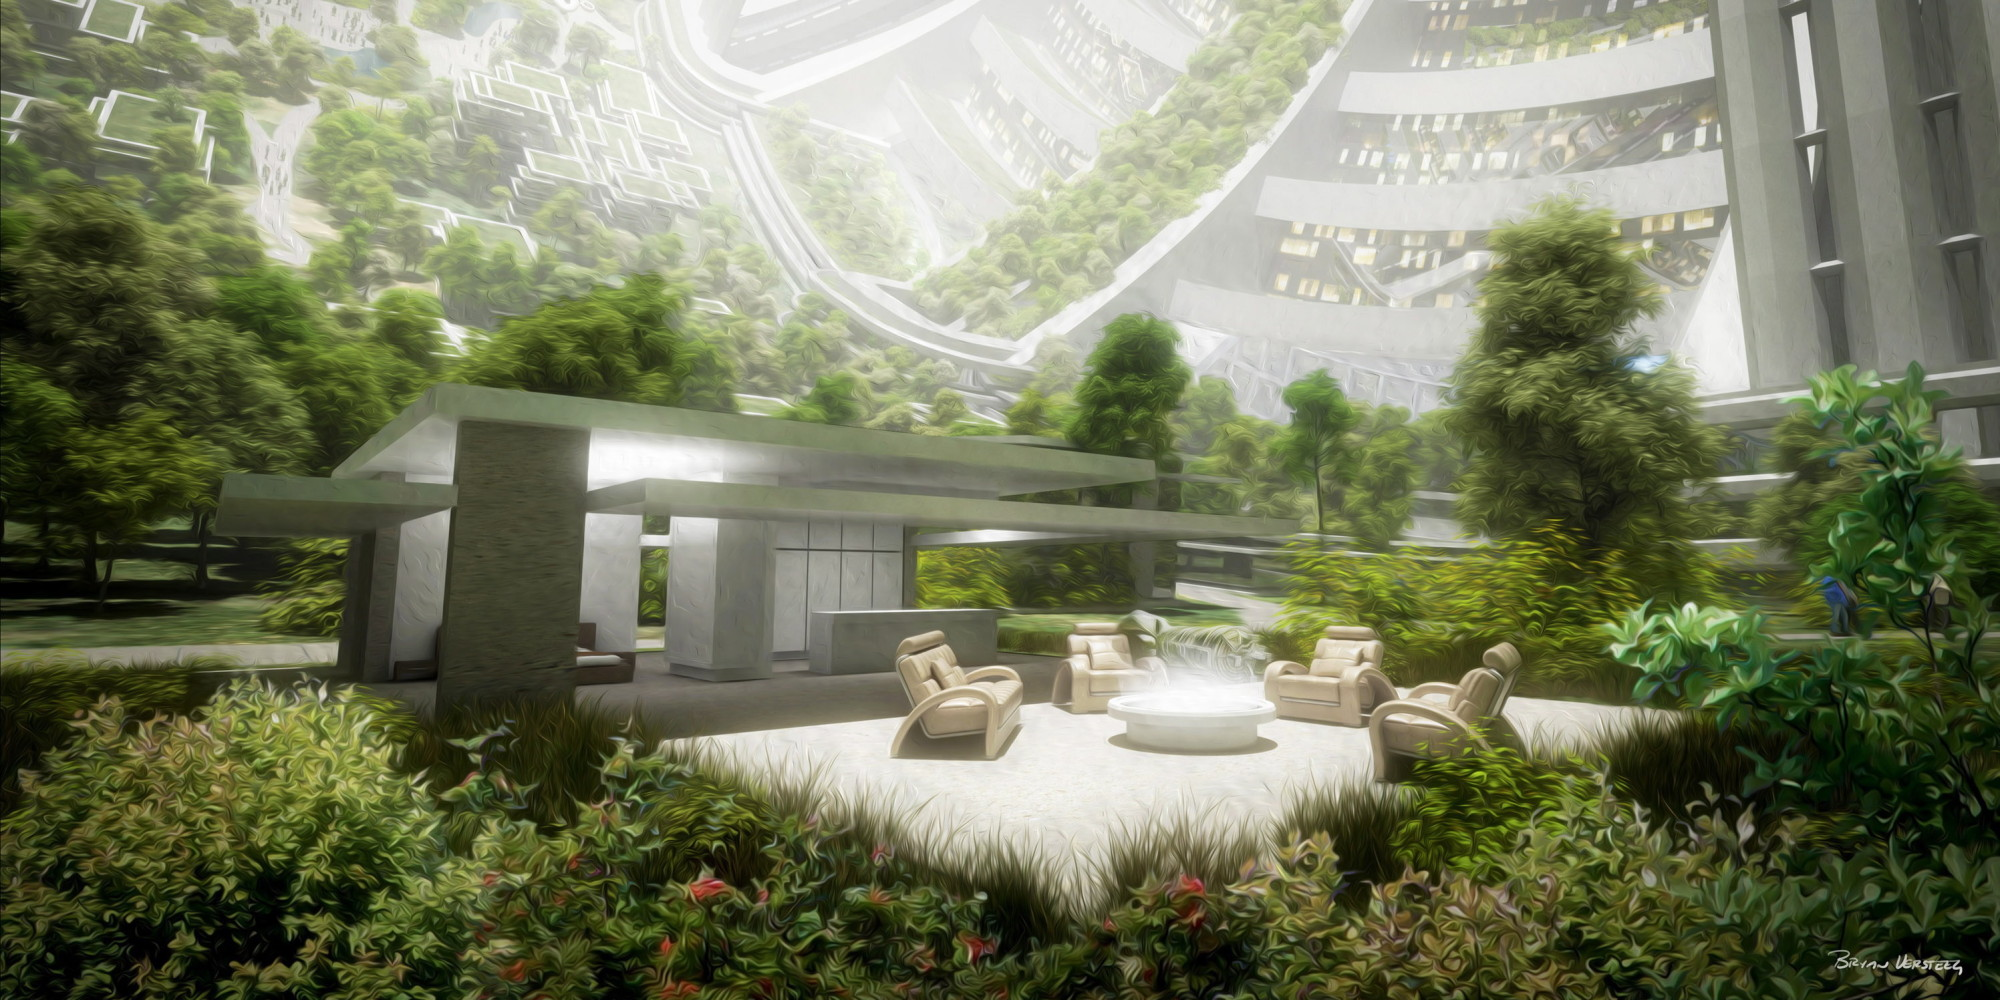 Mars one habitat concept by bryan versteeg shows how we for Outer space garden design cumbria